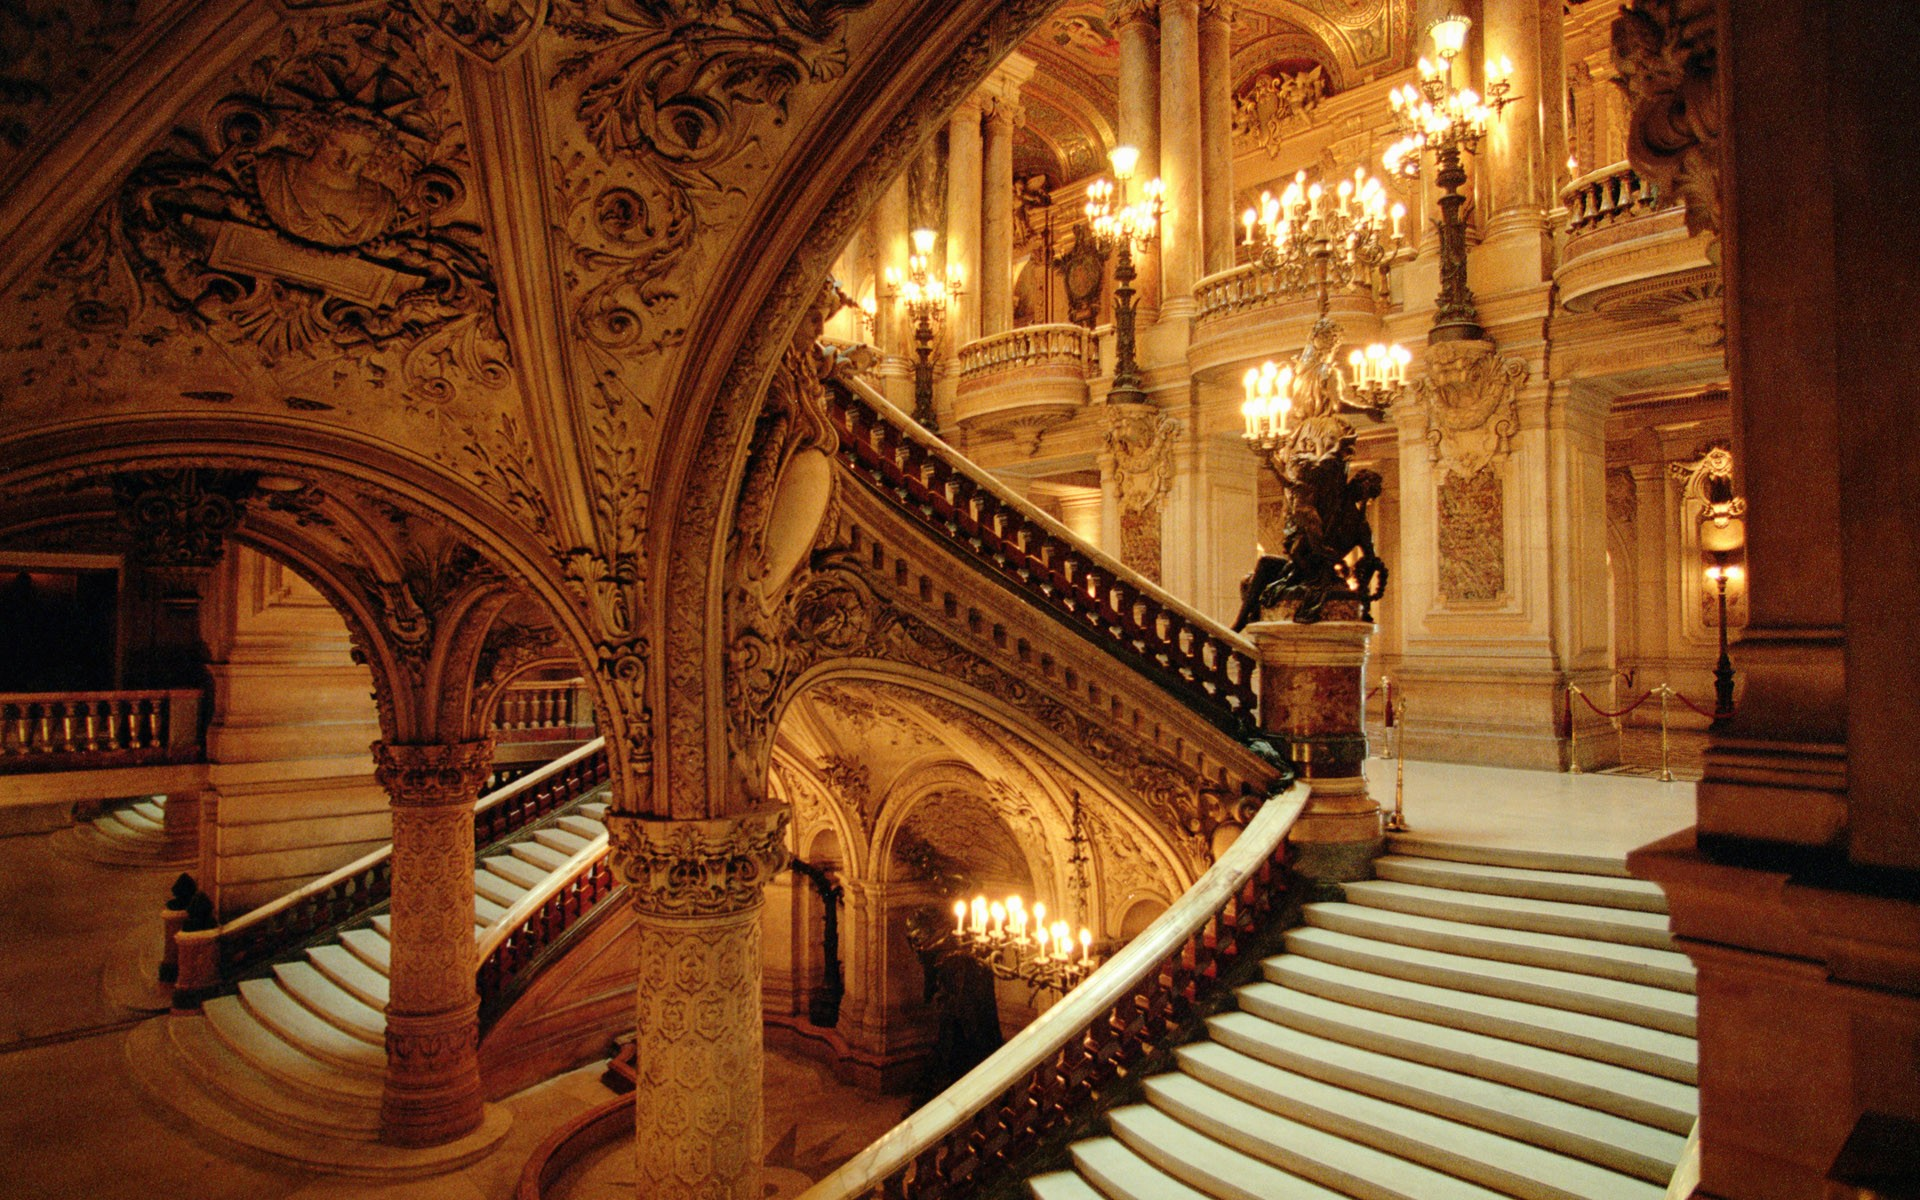 Beautiful interior of the opera house in France